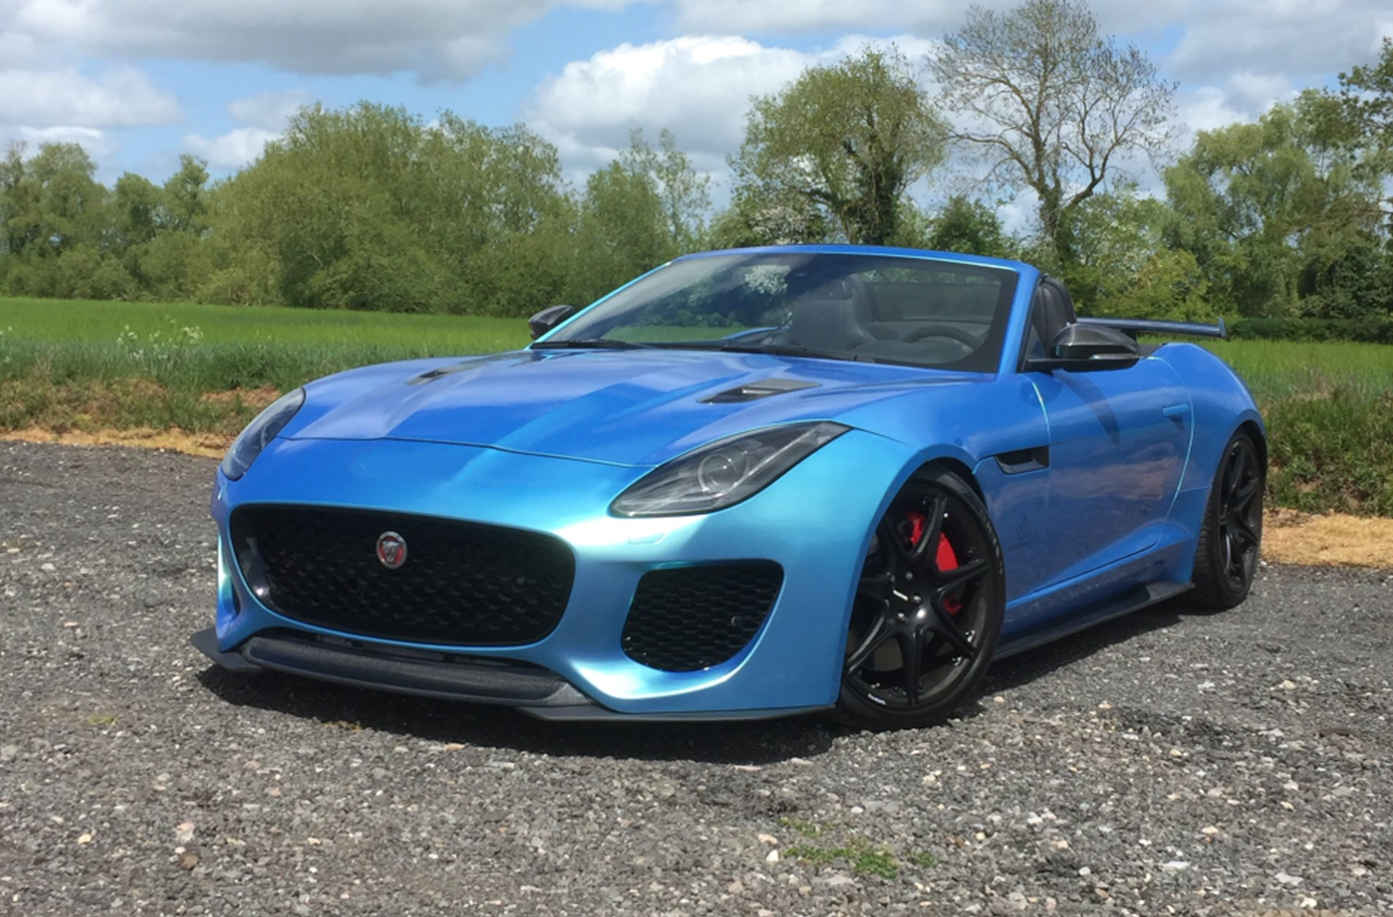 Jaguar F Type R 5.0 For sale – VIP Design F Type Predator 670bhp AWD: Car for Sale